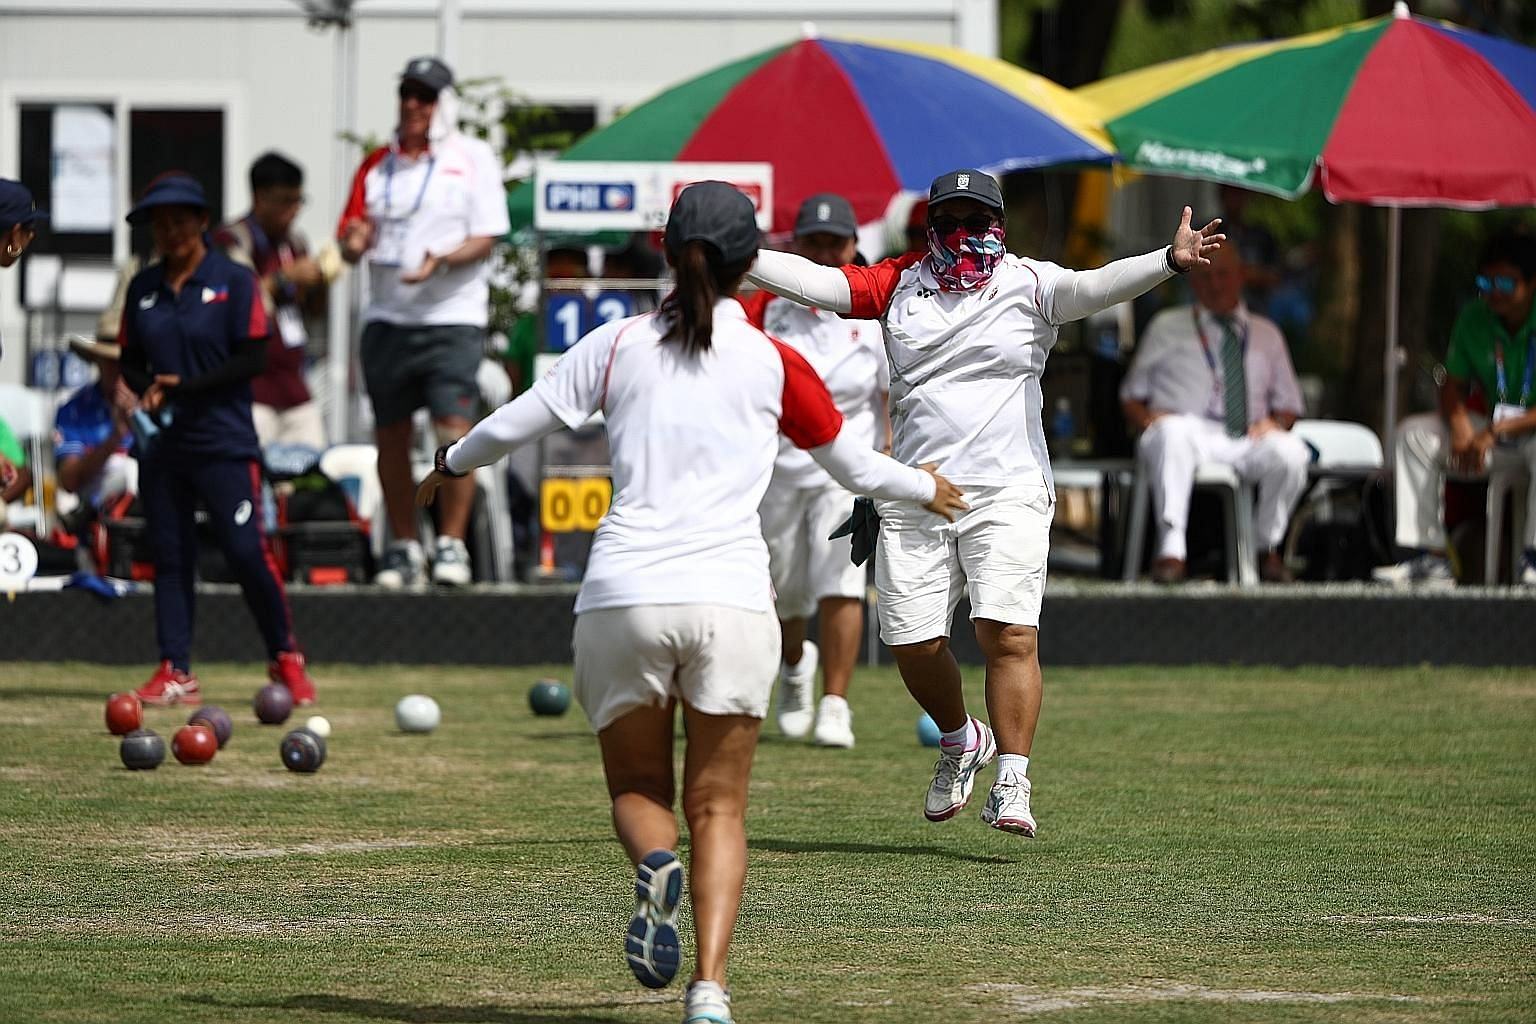 From left: Goh Quee Kee, Lim Poh Eng and Shermeen Lim with their golds beating the Philippines 16-13 in the lawn bowls trio final yesterday. Right: There was relief and joy at the end, with the Republic having trailed 8-11 at the Friendship Gate in C